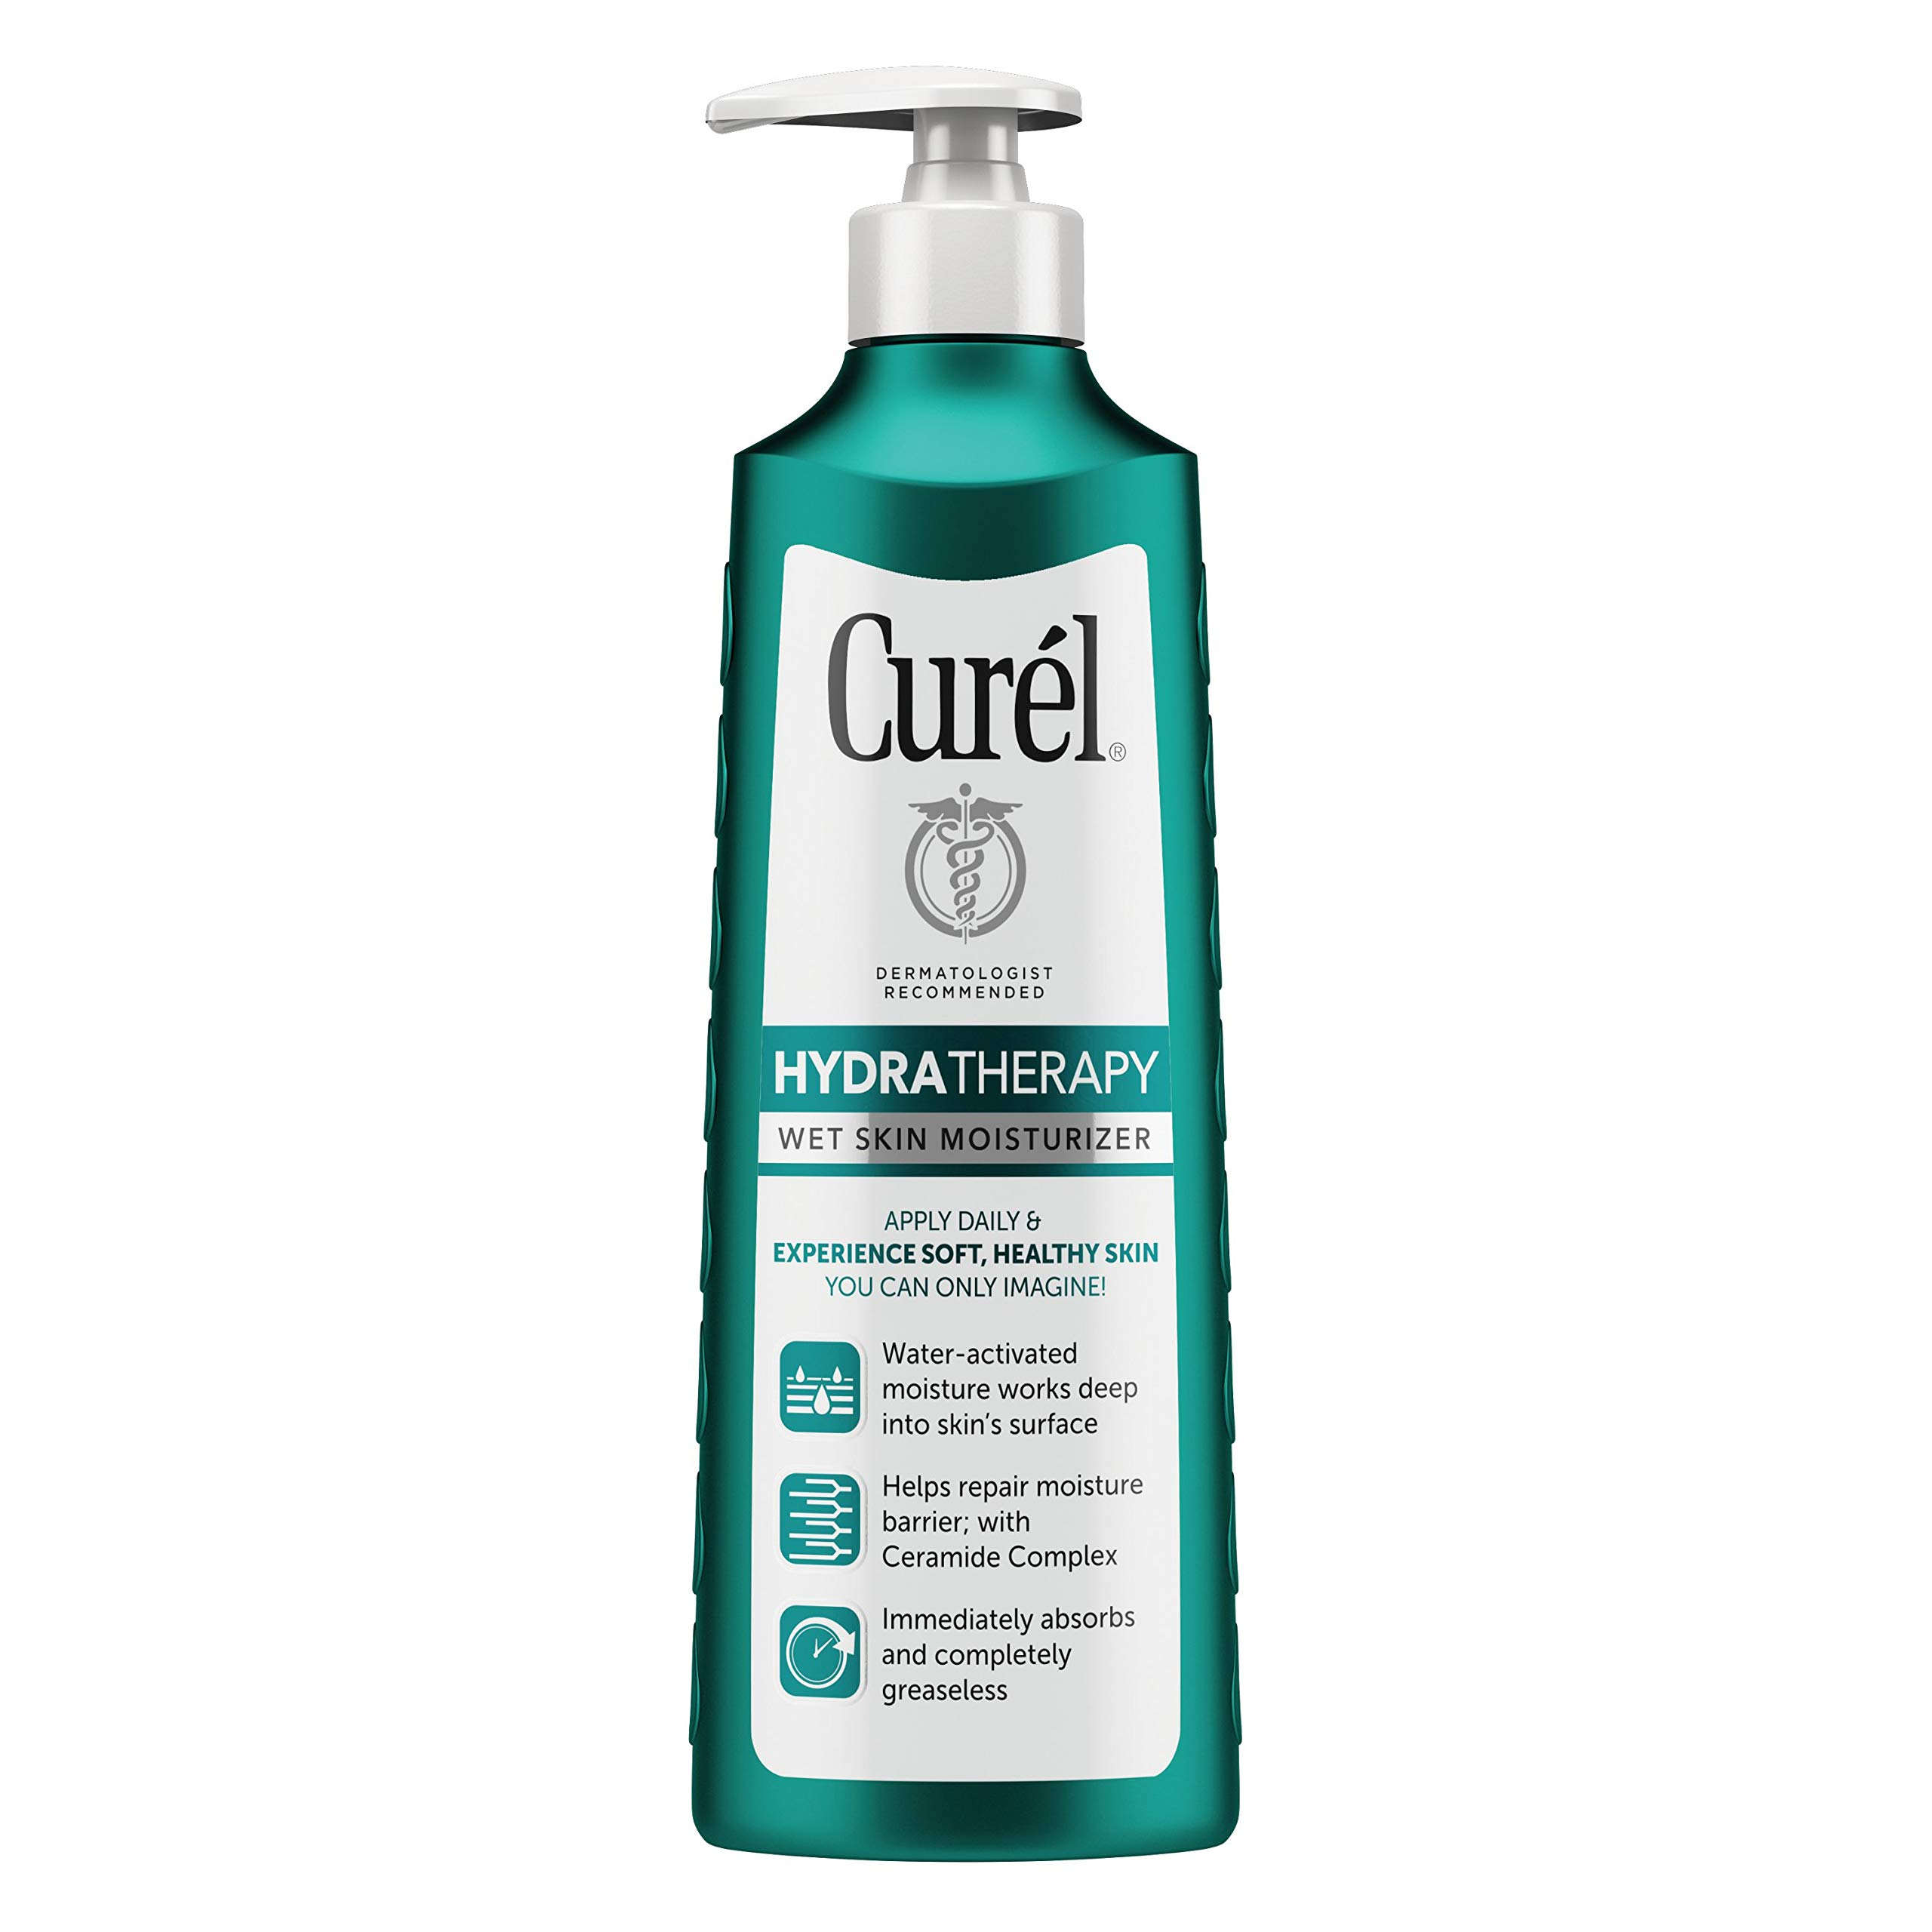 Curél Hydra Therapy In Shower Lotion, Wet Skin Moisturizer for Dry or Extra-dry Skin, 8 Ounce, with Advanced Ceramide Complex, for Optimal Moisture Retention